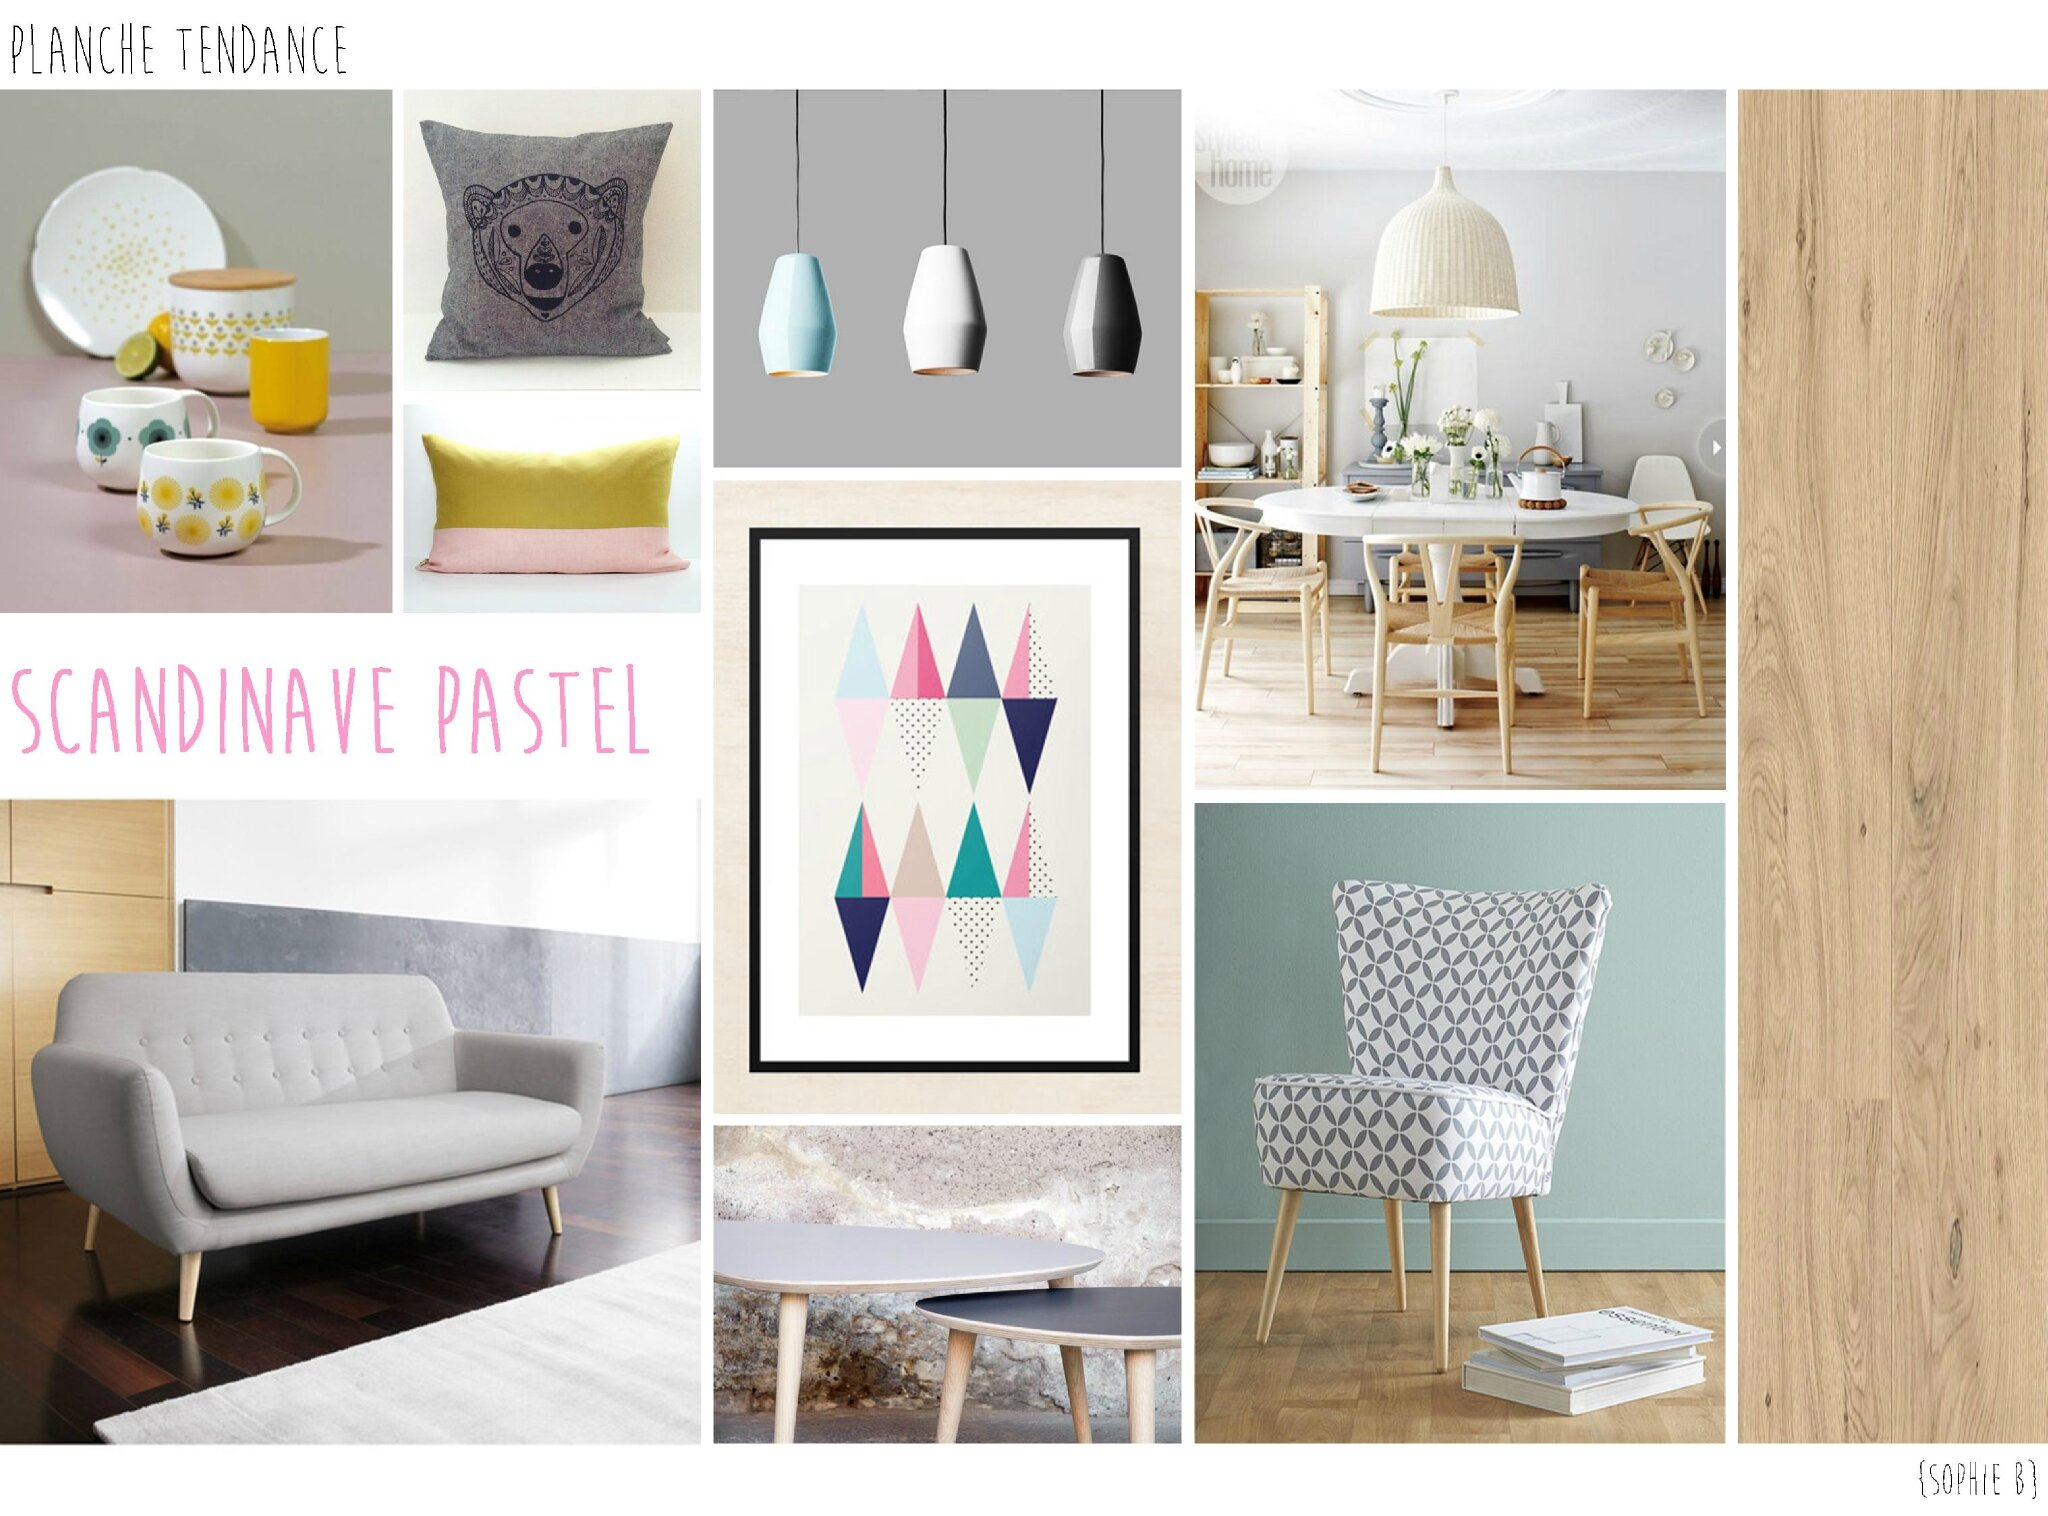 Tendance scandinave pastel j 39 adore d coratrice d for Blog decoration interieur scandinave